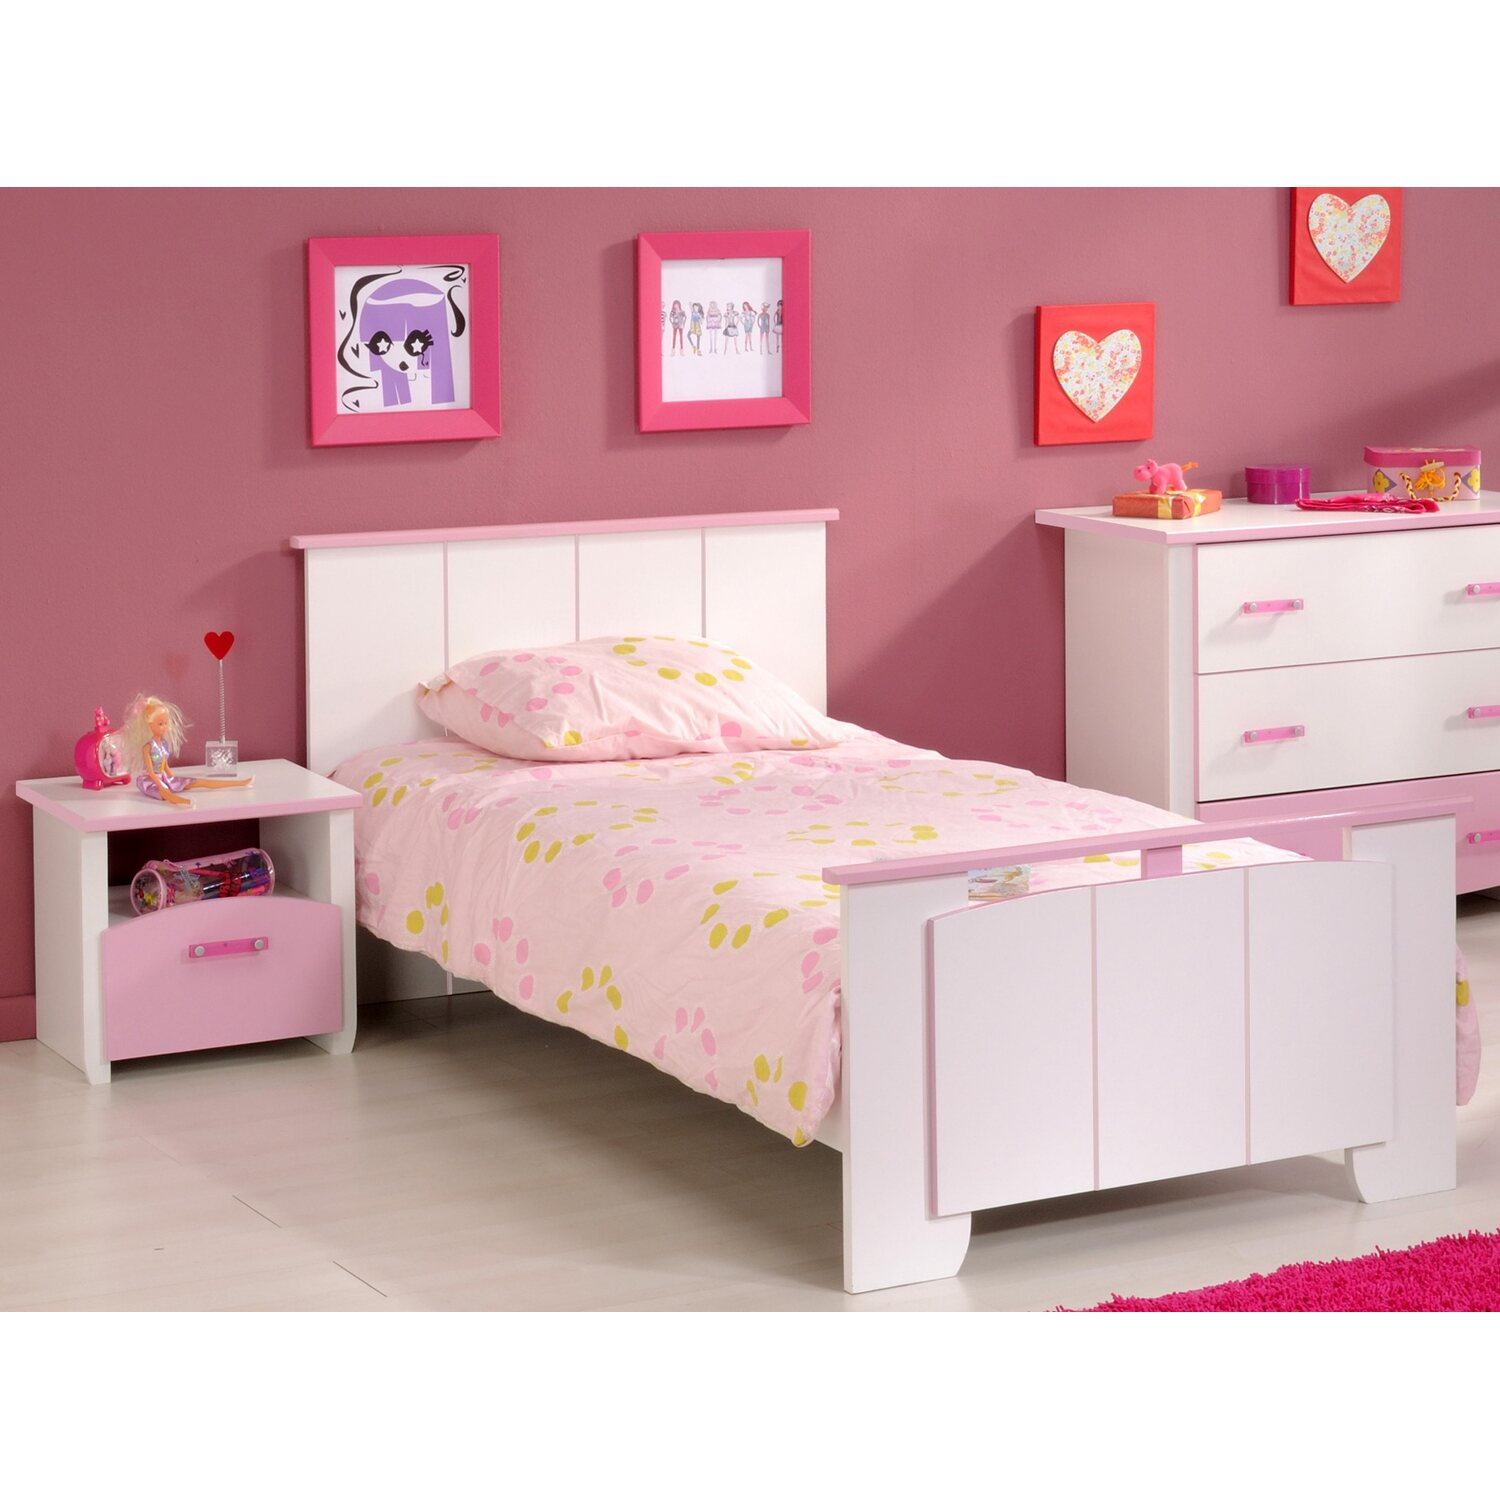 kinderbett mit trendy kinderbett mit dach wally with. Black Bedroom Furniture Sets. Home Design Ideas